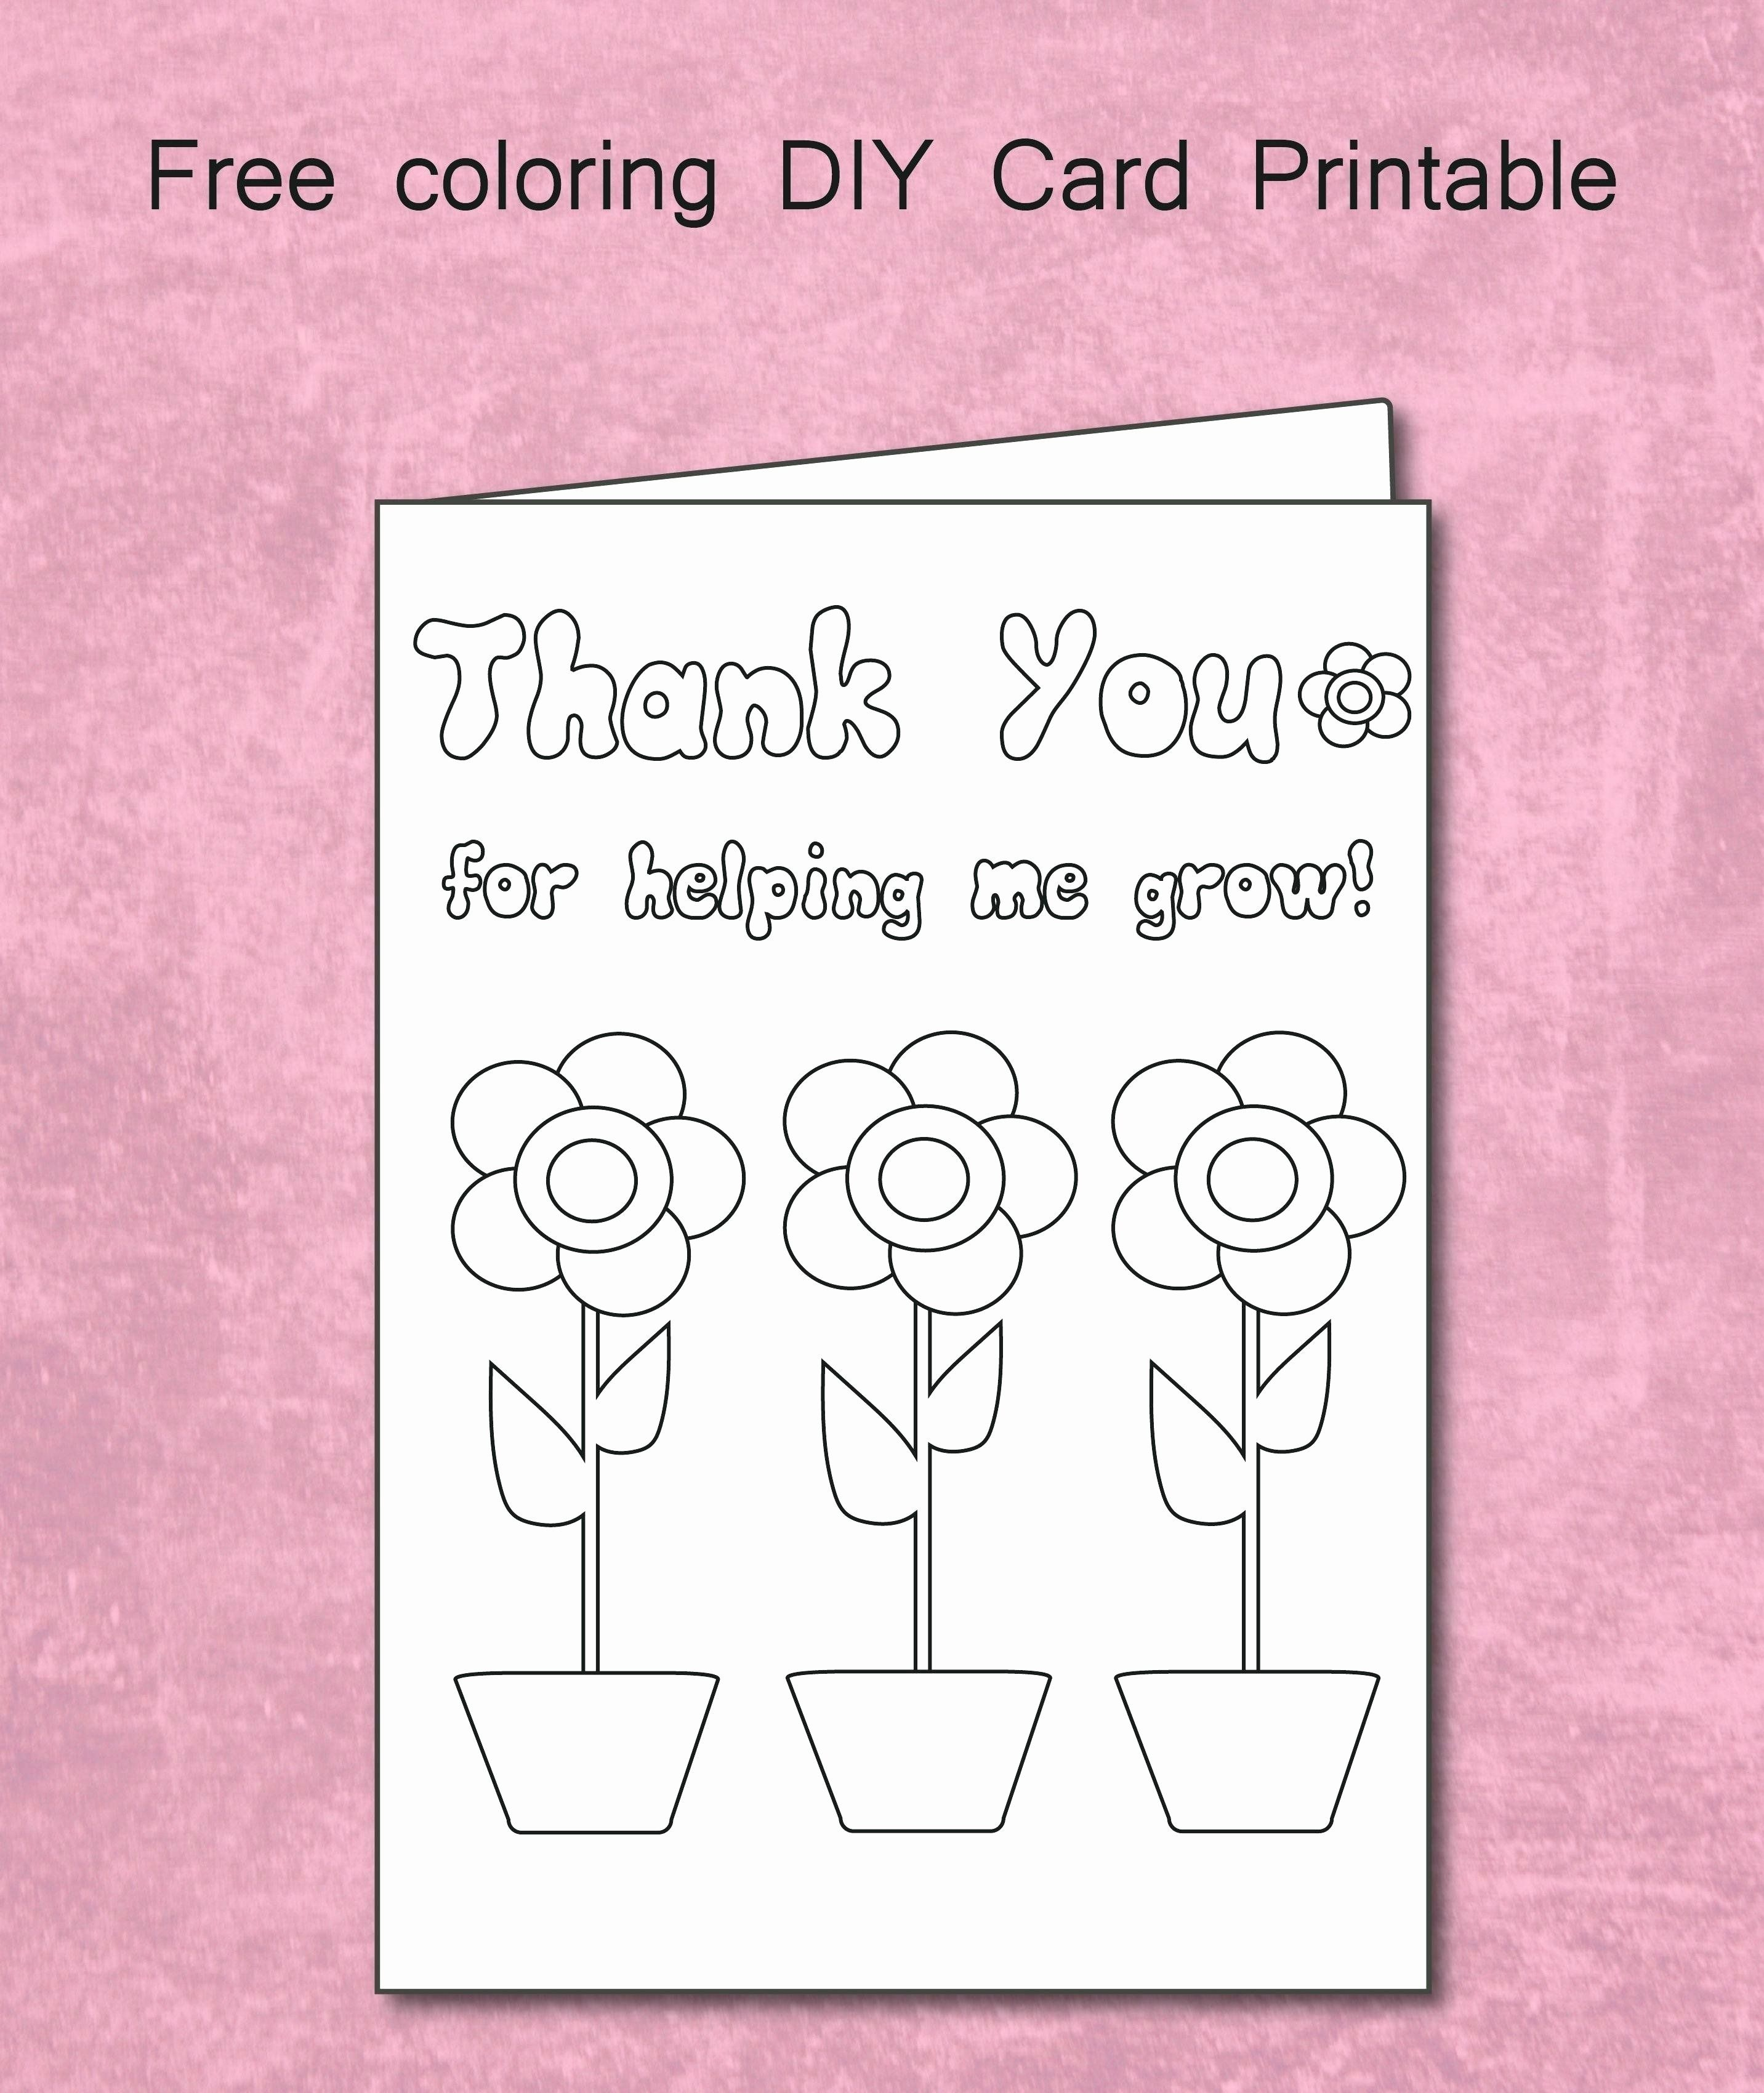 Printable Teacher Appreciation Cards Awesome Thank You Teacher Coloring Cards Eastbaypaper Teacher Cards Teacher Appreciation Cards Teacher Thank You Cards